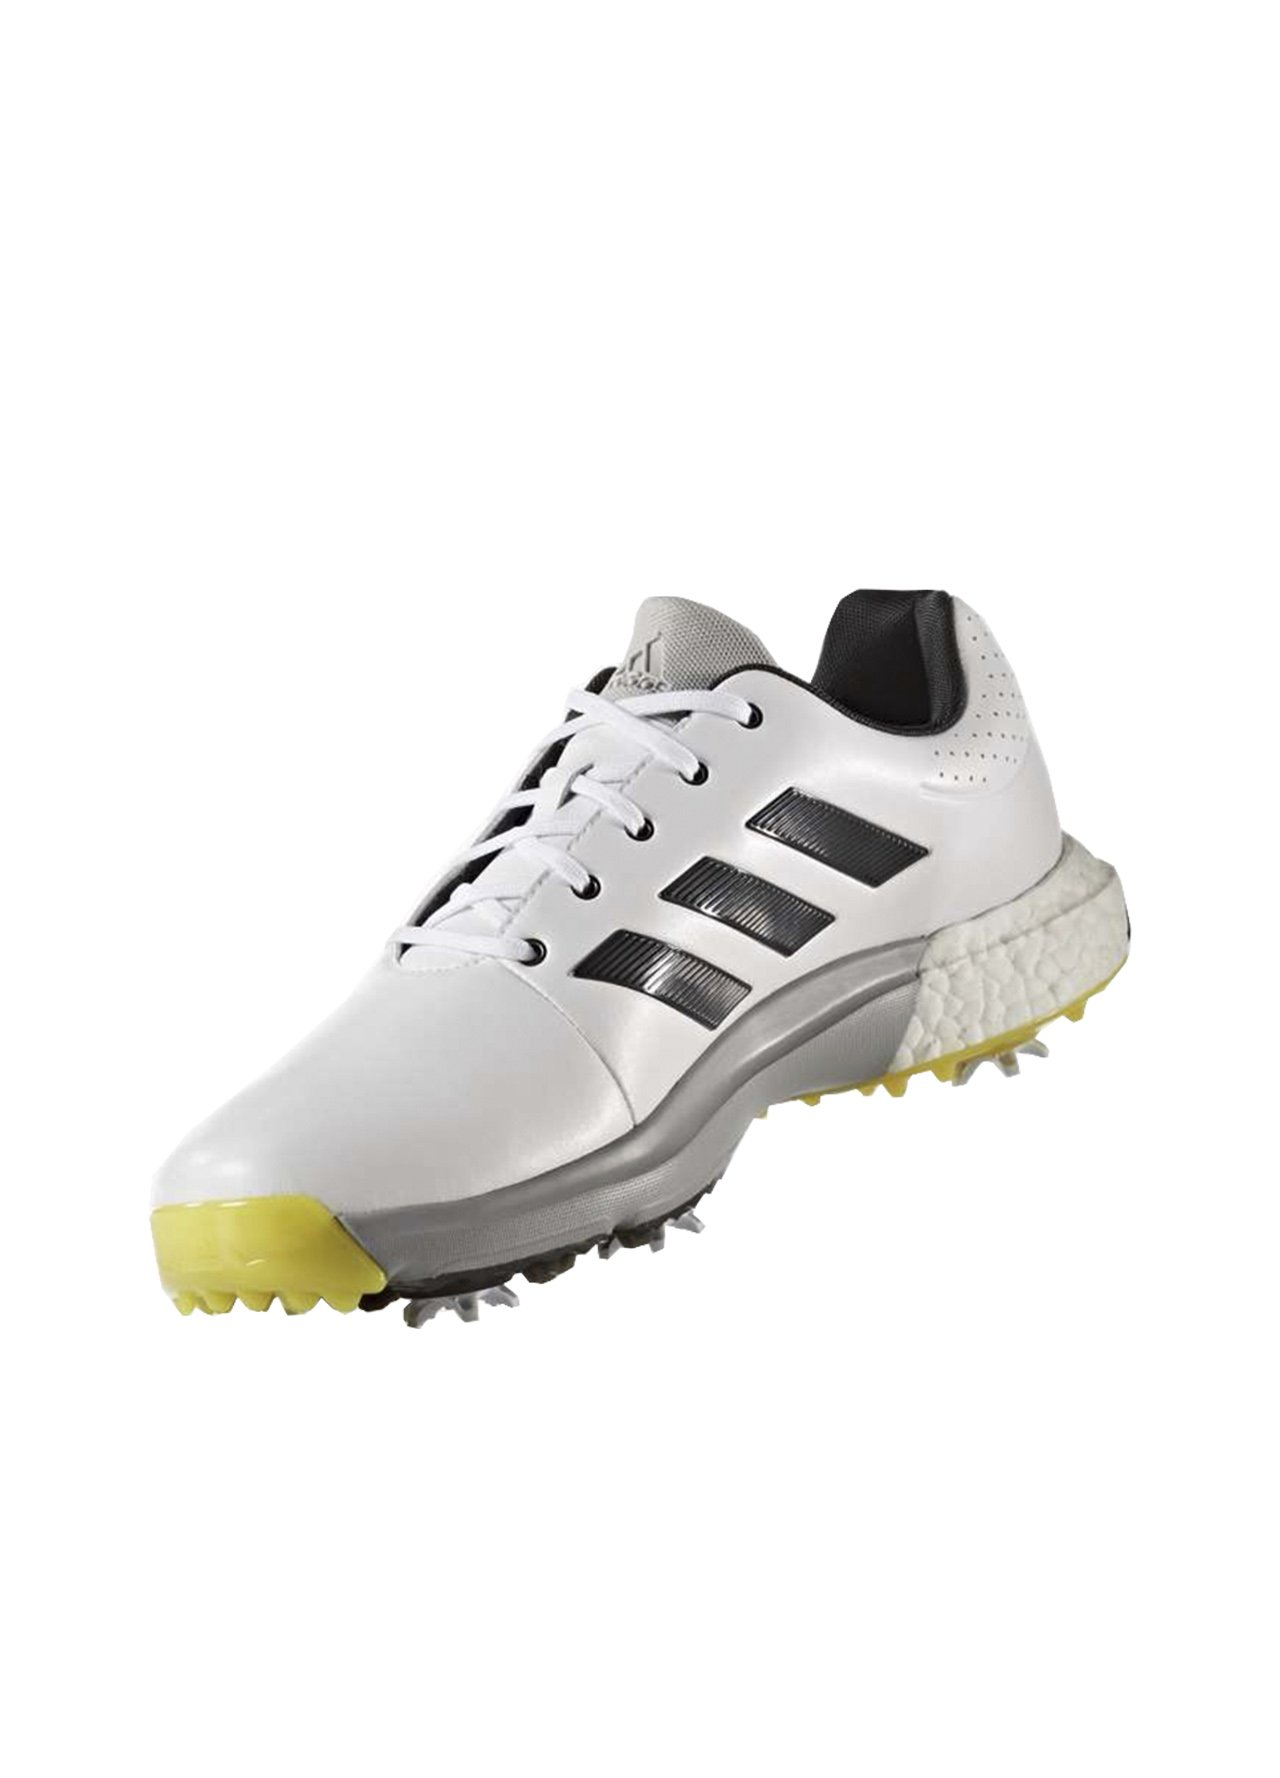 Golf Clothing - Shoes - Adidas adiPower Boost 3 Waterproof Golf ... d7776bb7a